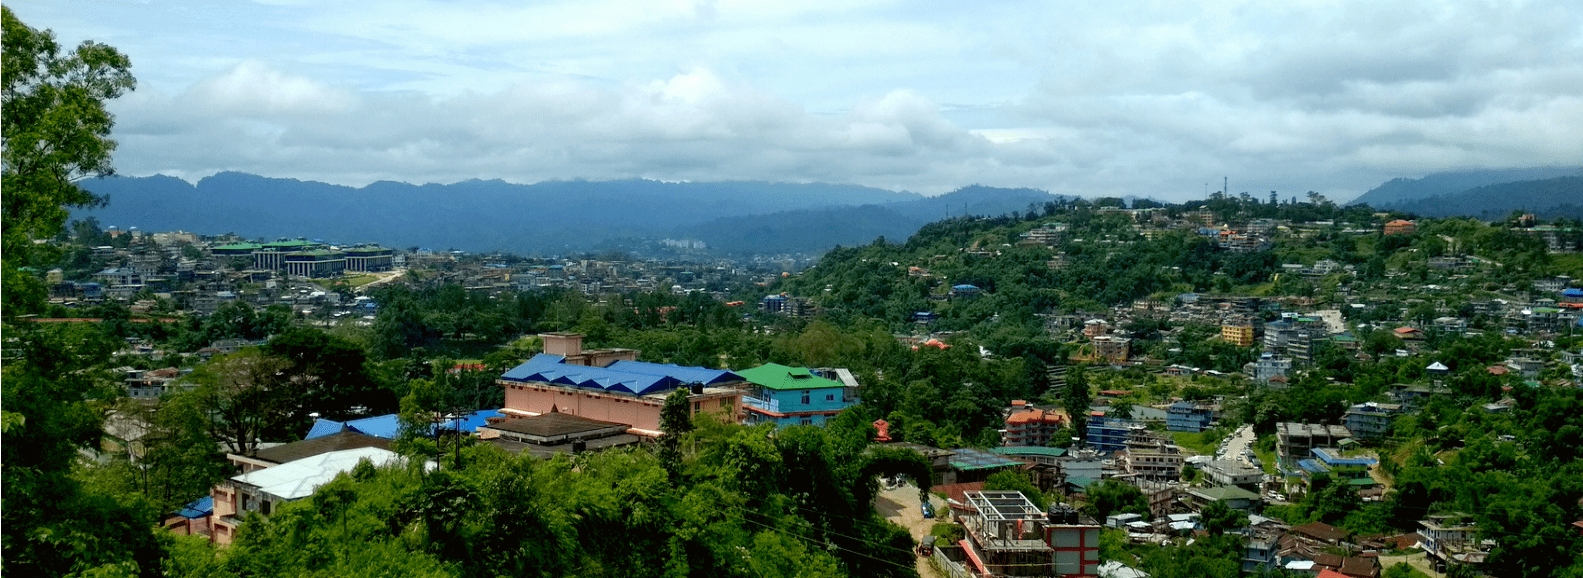 Beautiful mountain cityscape of Itanagar located in Arunachal Pradesh